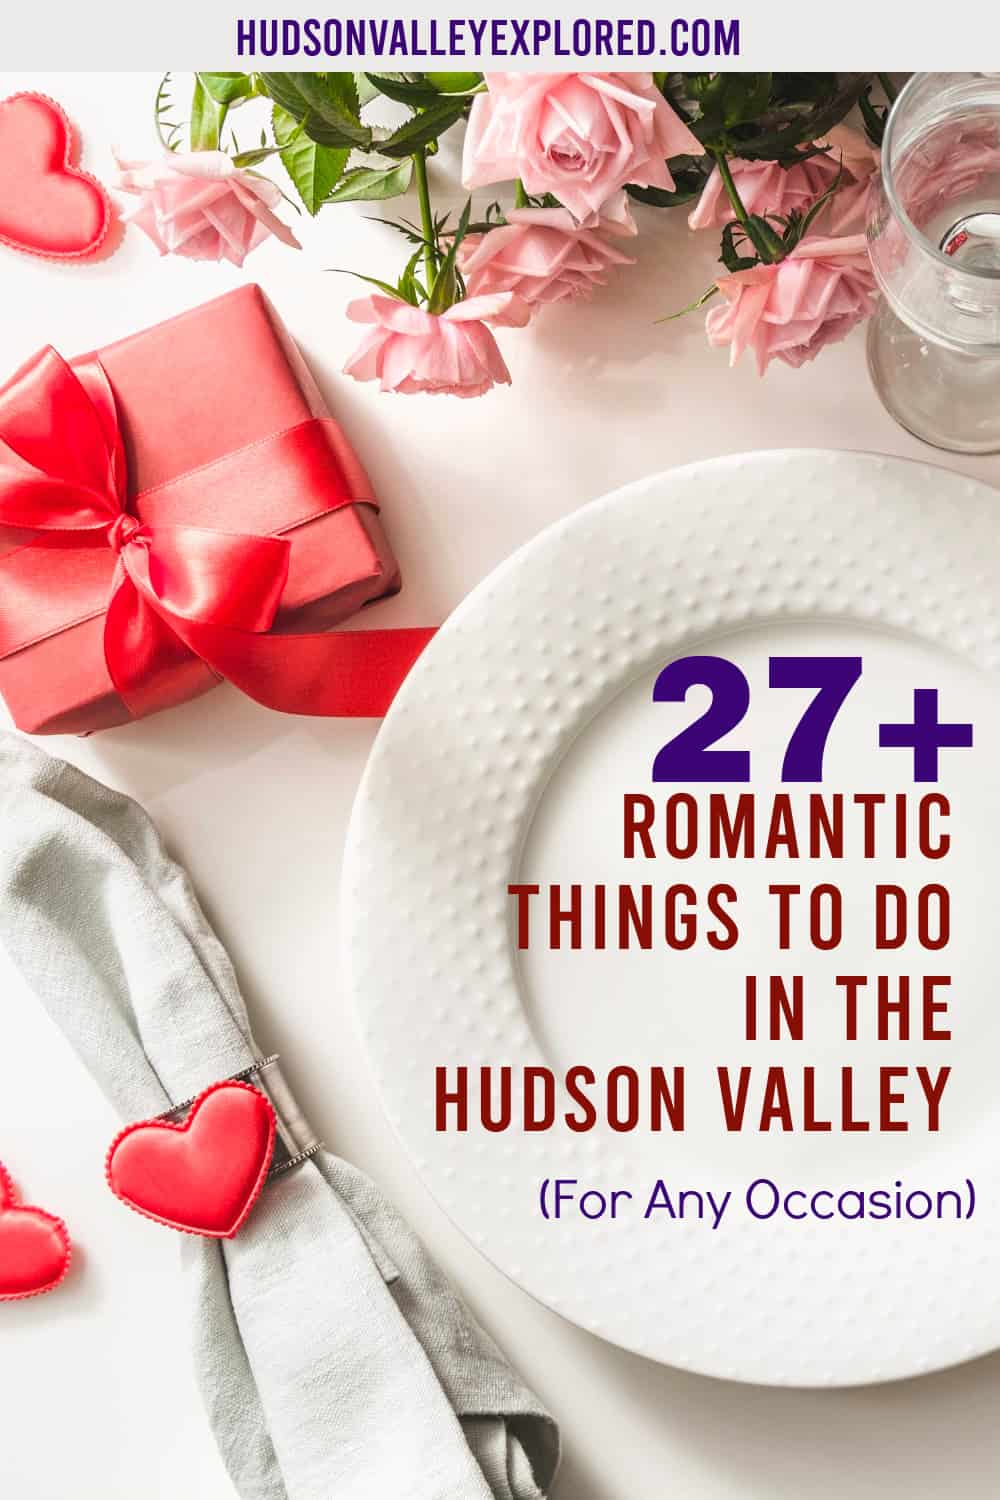 Discover all the romantic things you can do in the Hudson Valley.